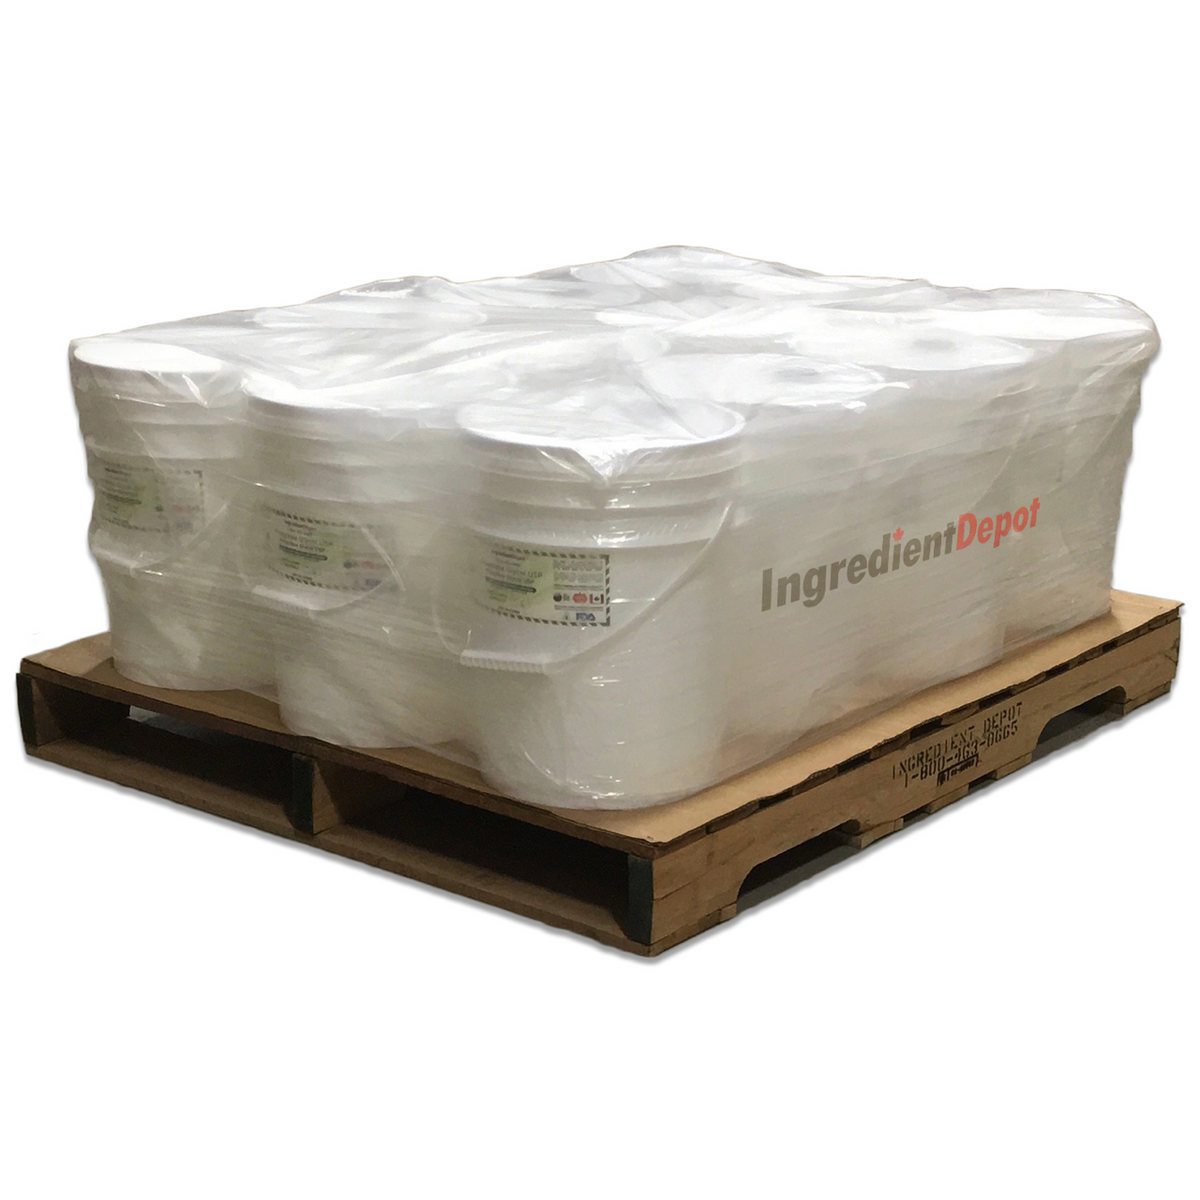 Propylene Glycol North American PG 99.5% USP 100% BIOBASED | 12 x 20 litres on a Pallet